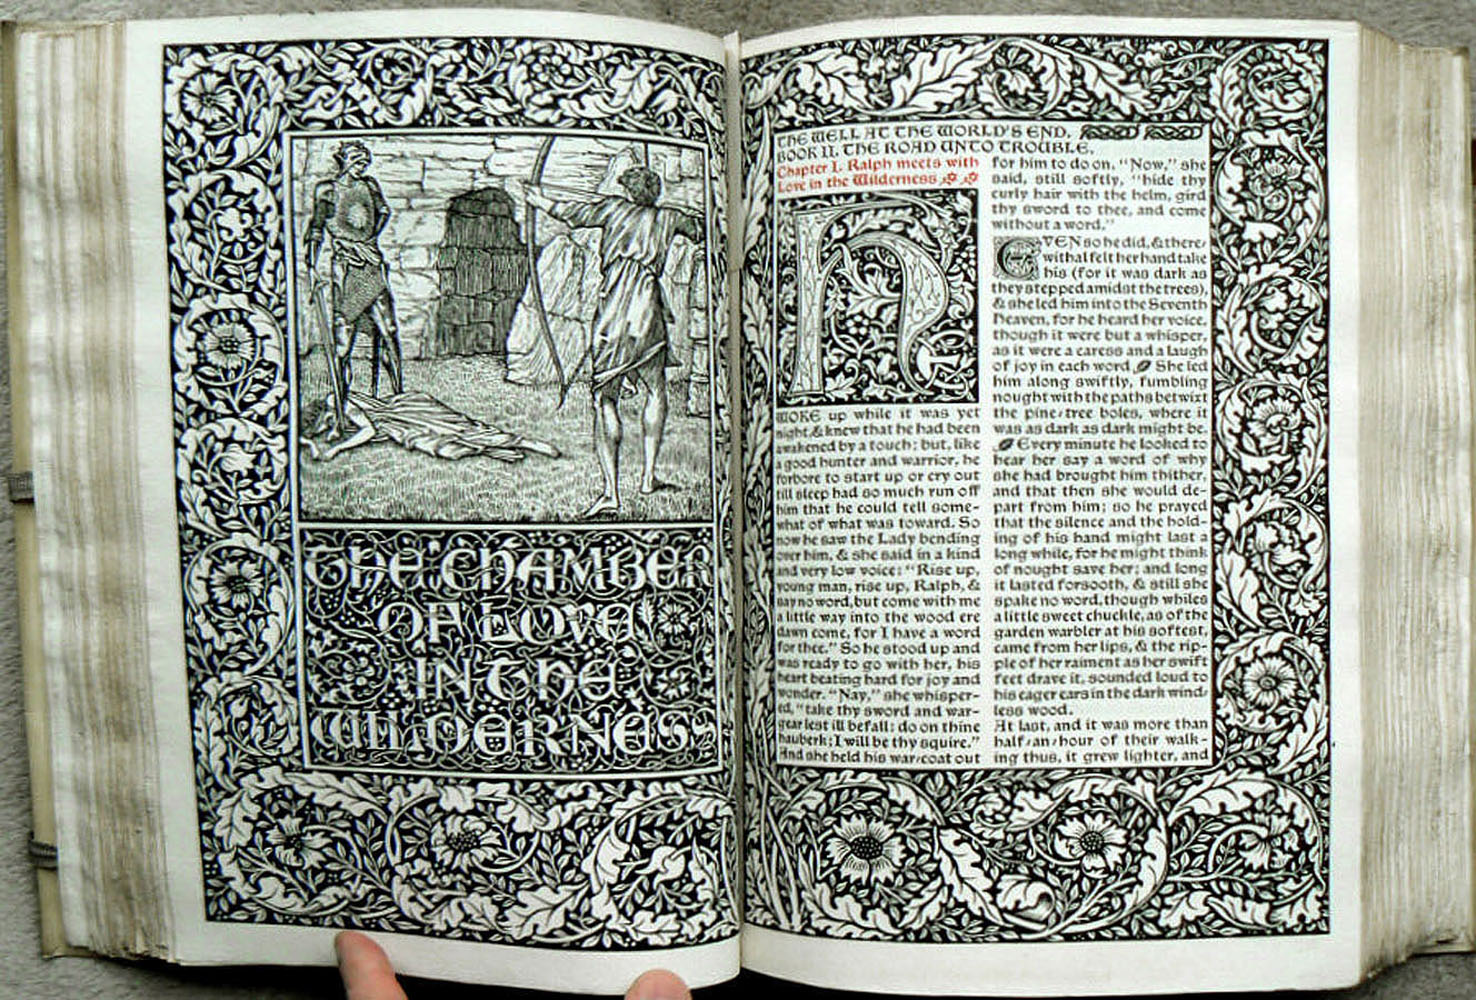 William Morris: The Well at the World's End